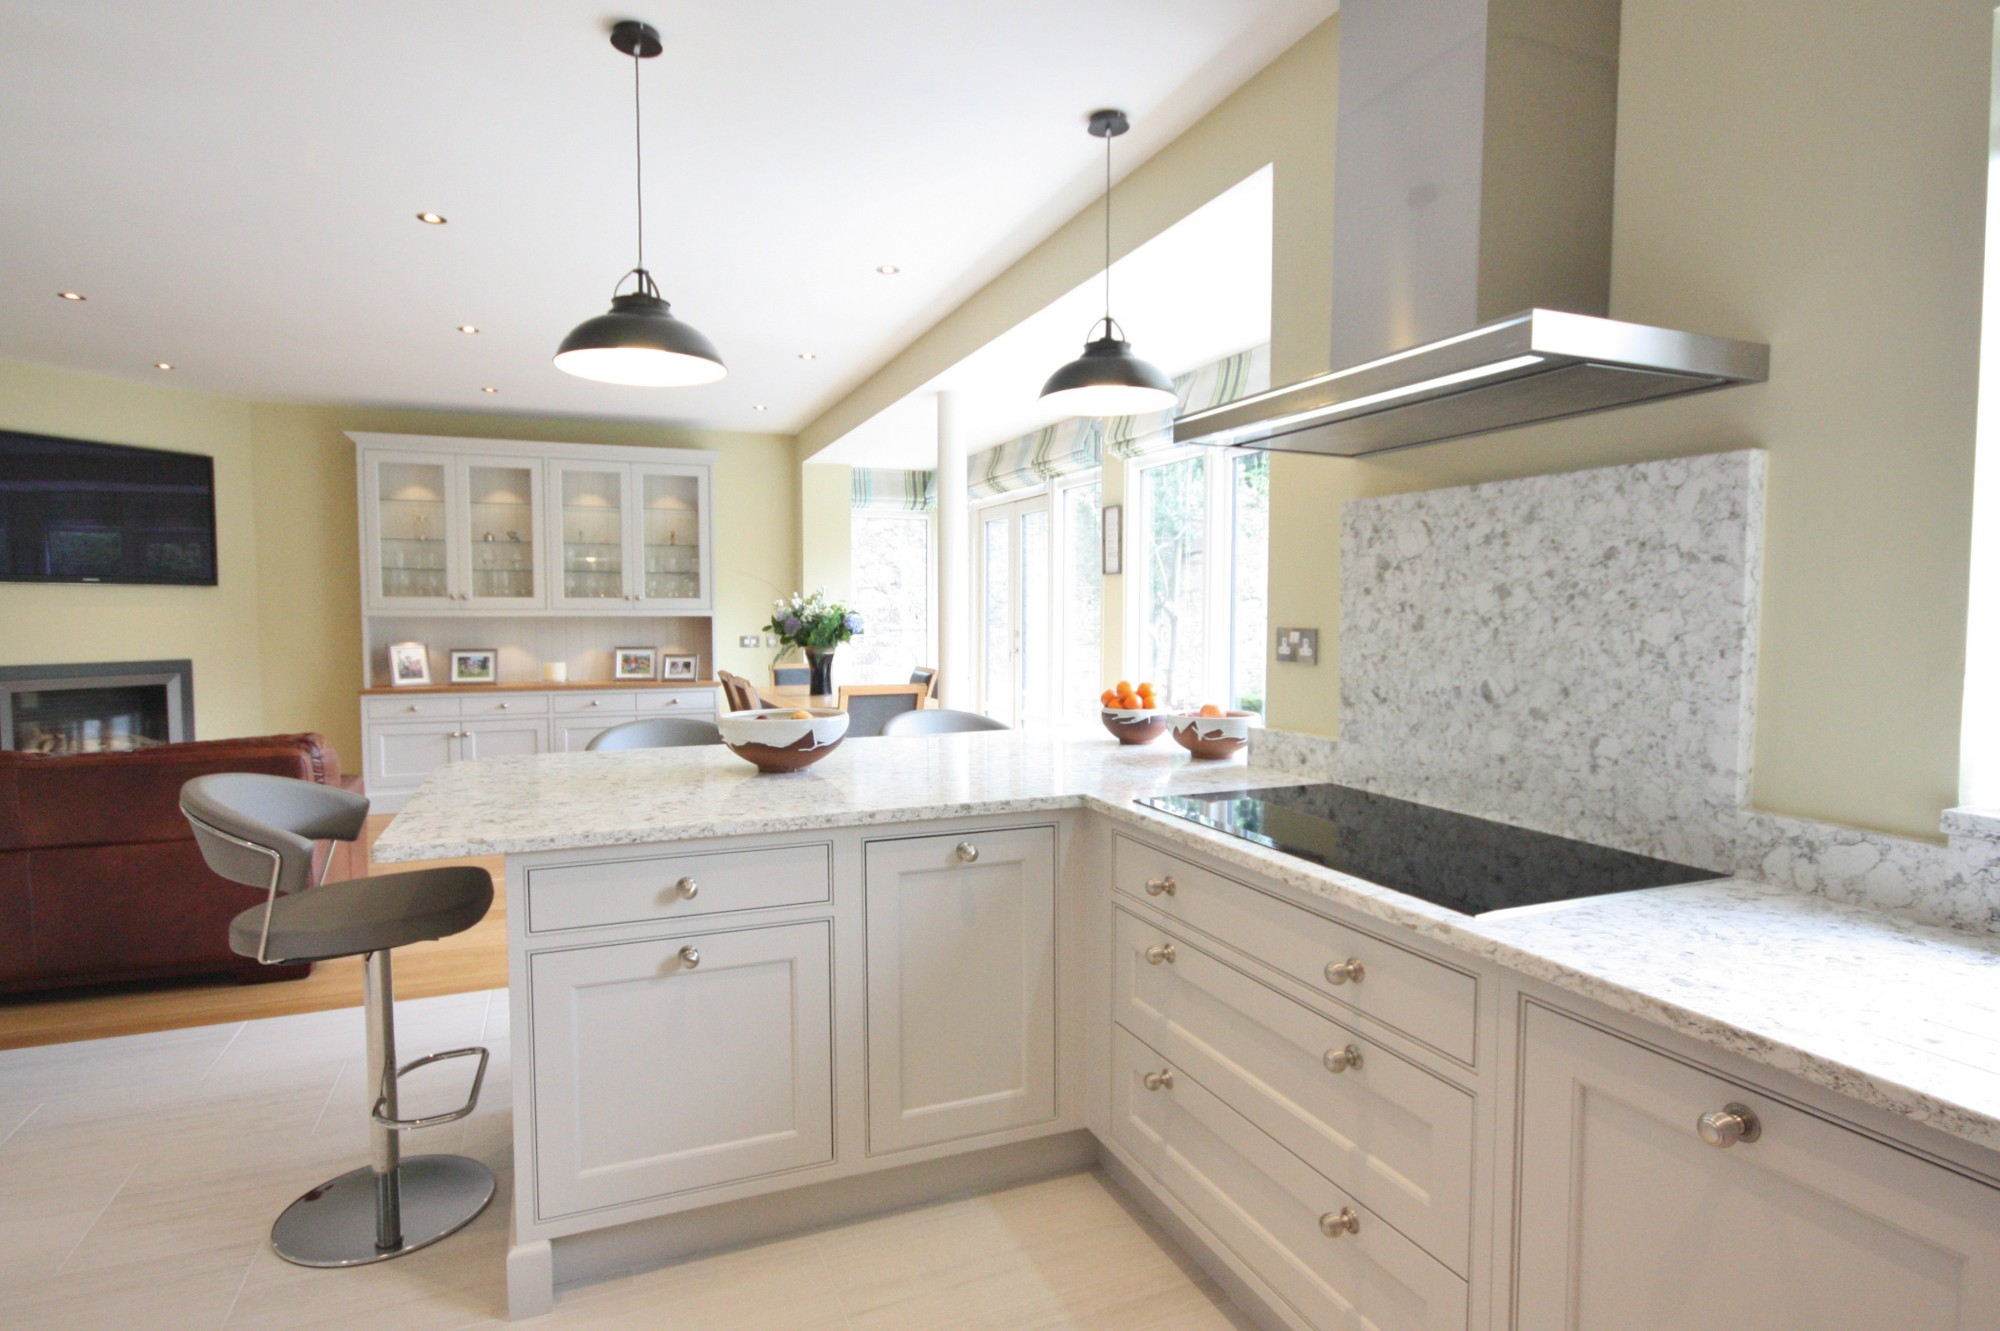 Enigma Design Dm Inframe Hand Painted Bespoke Kitchen